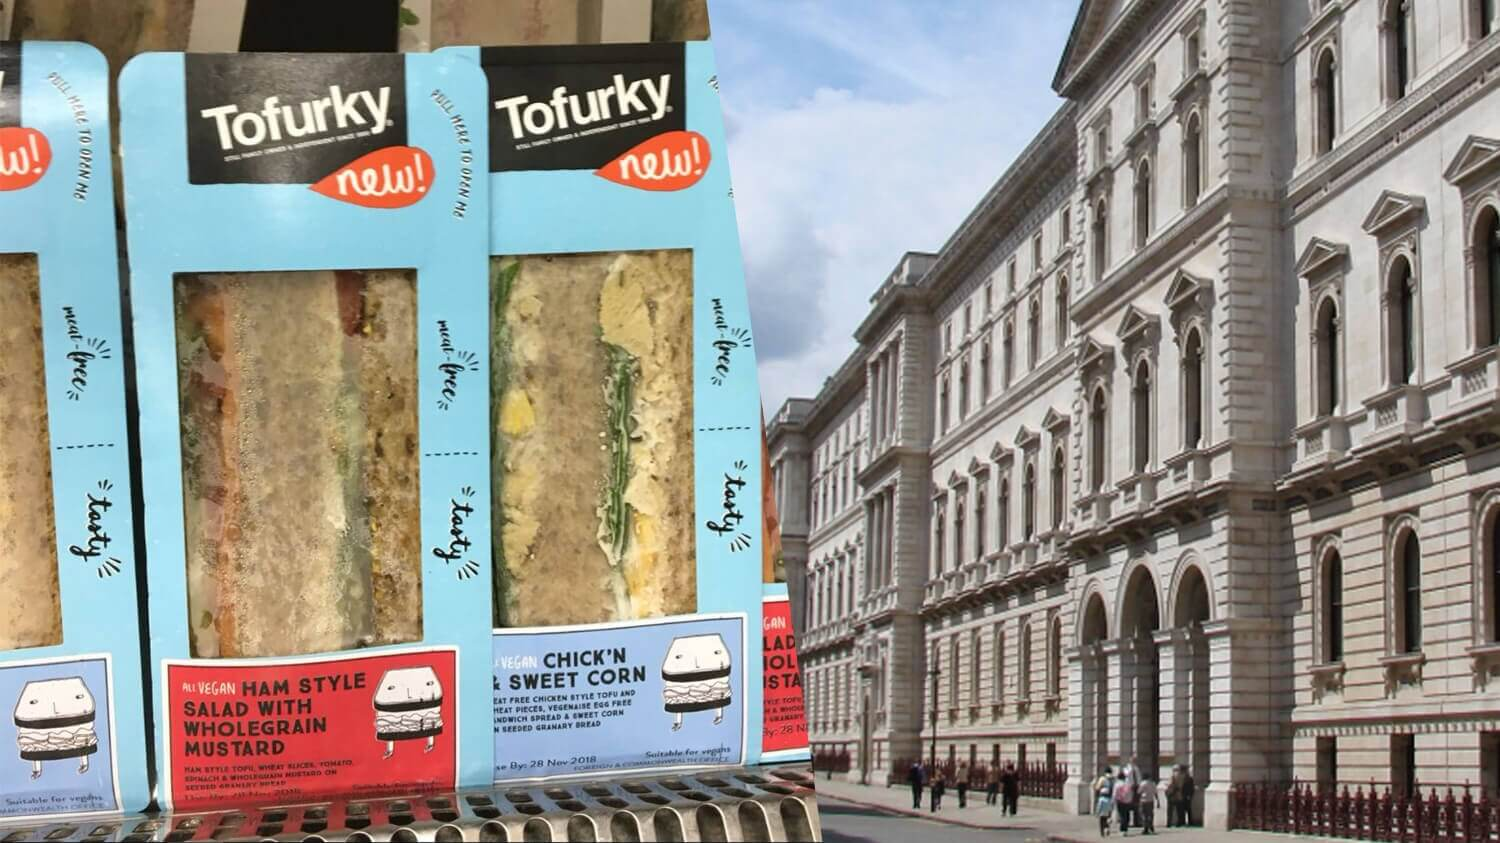 Vegan Tofurky Sandwiches Launch at UK's Foreign & Commonwealth Office